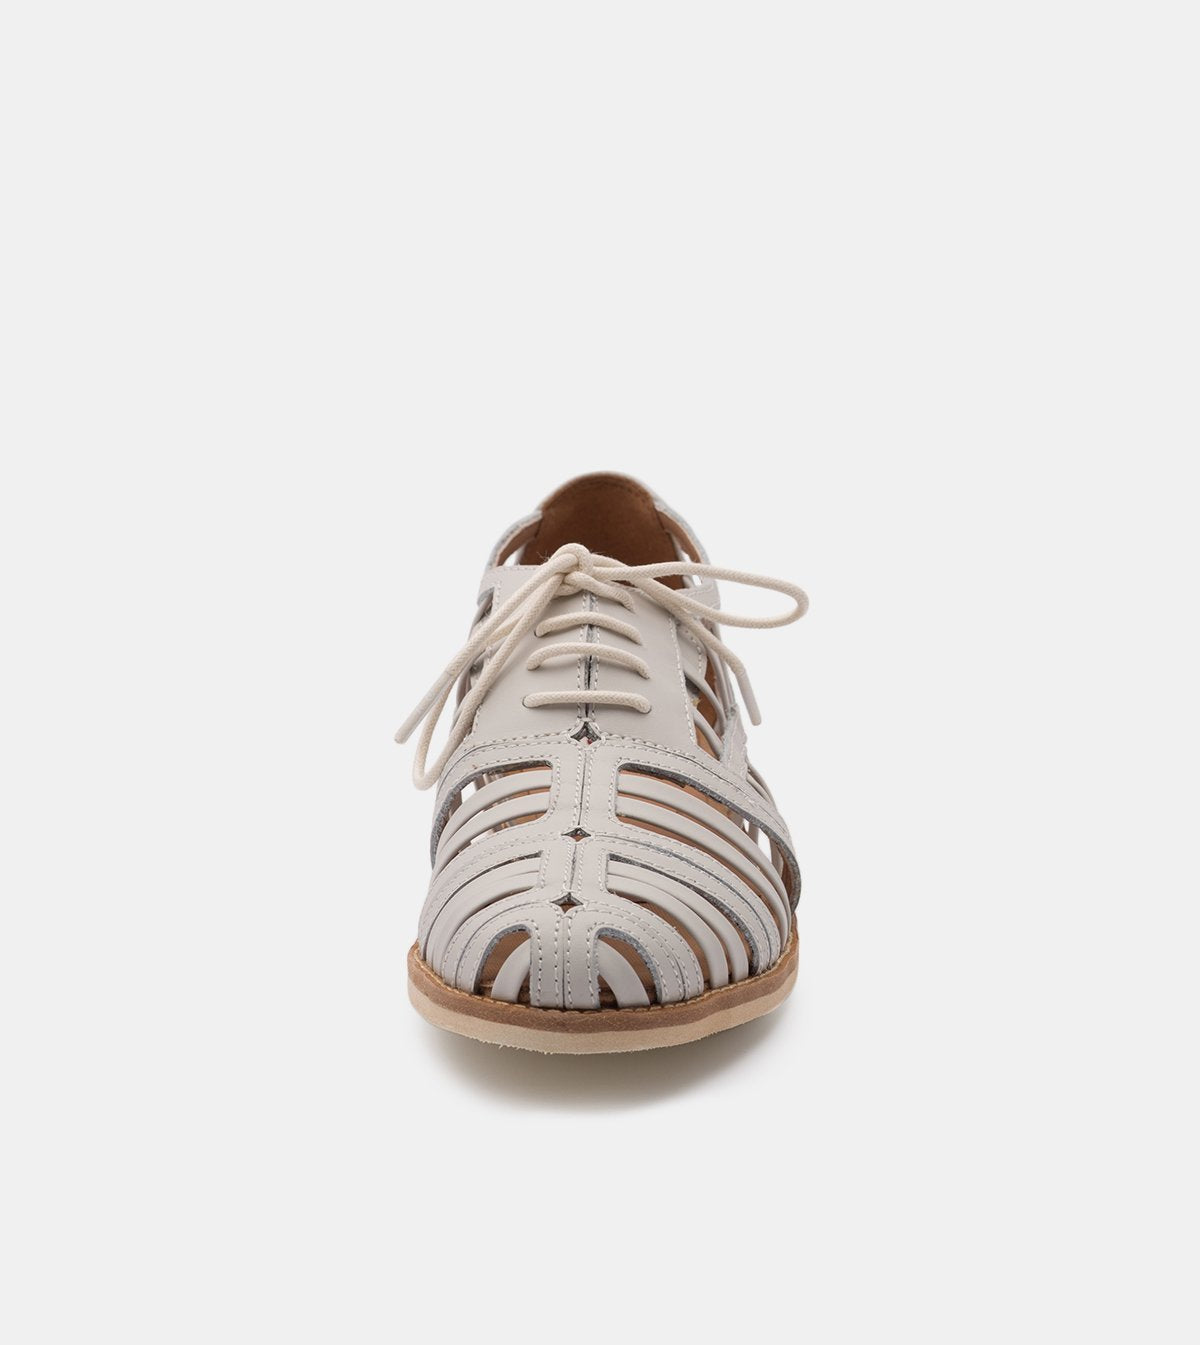 Rollie Derby Cage White Shoes